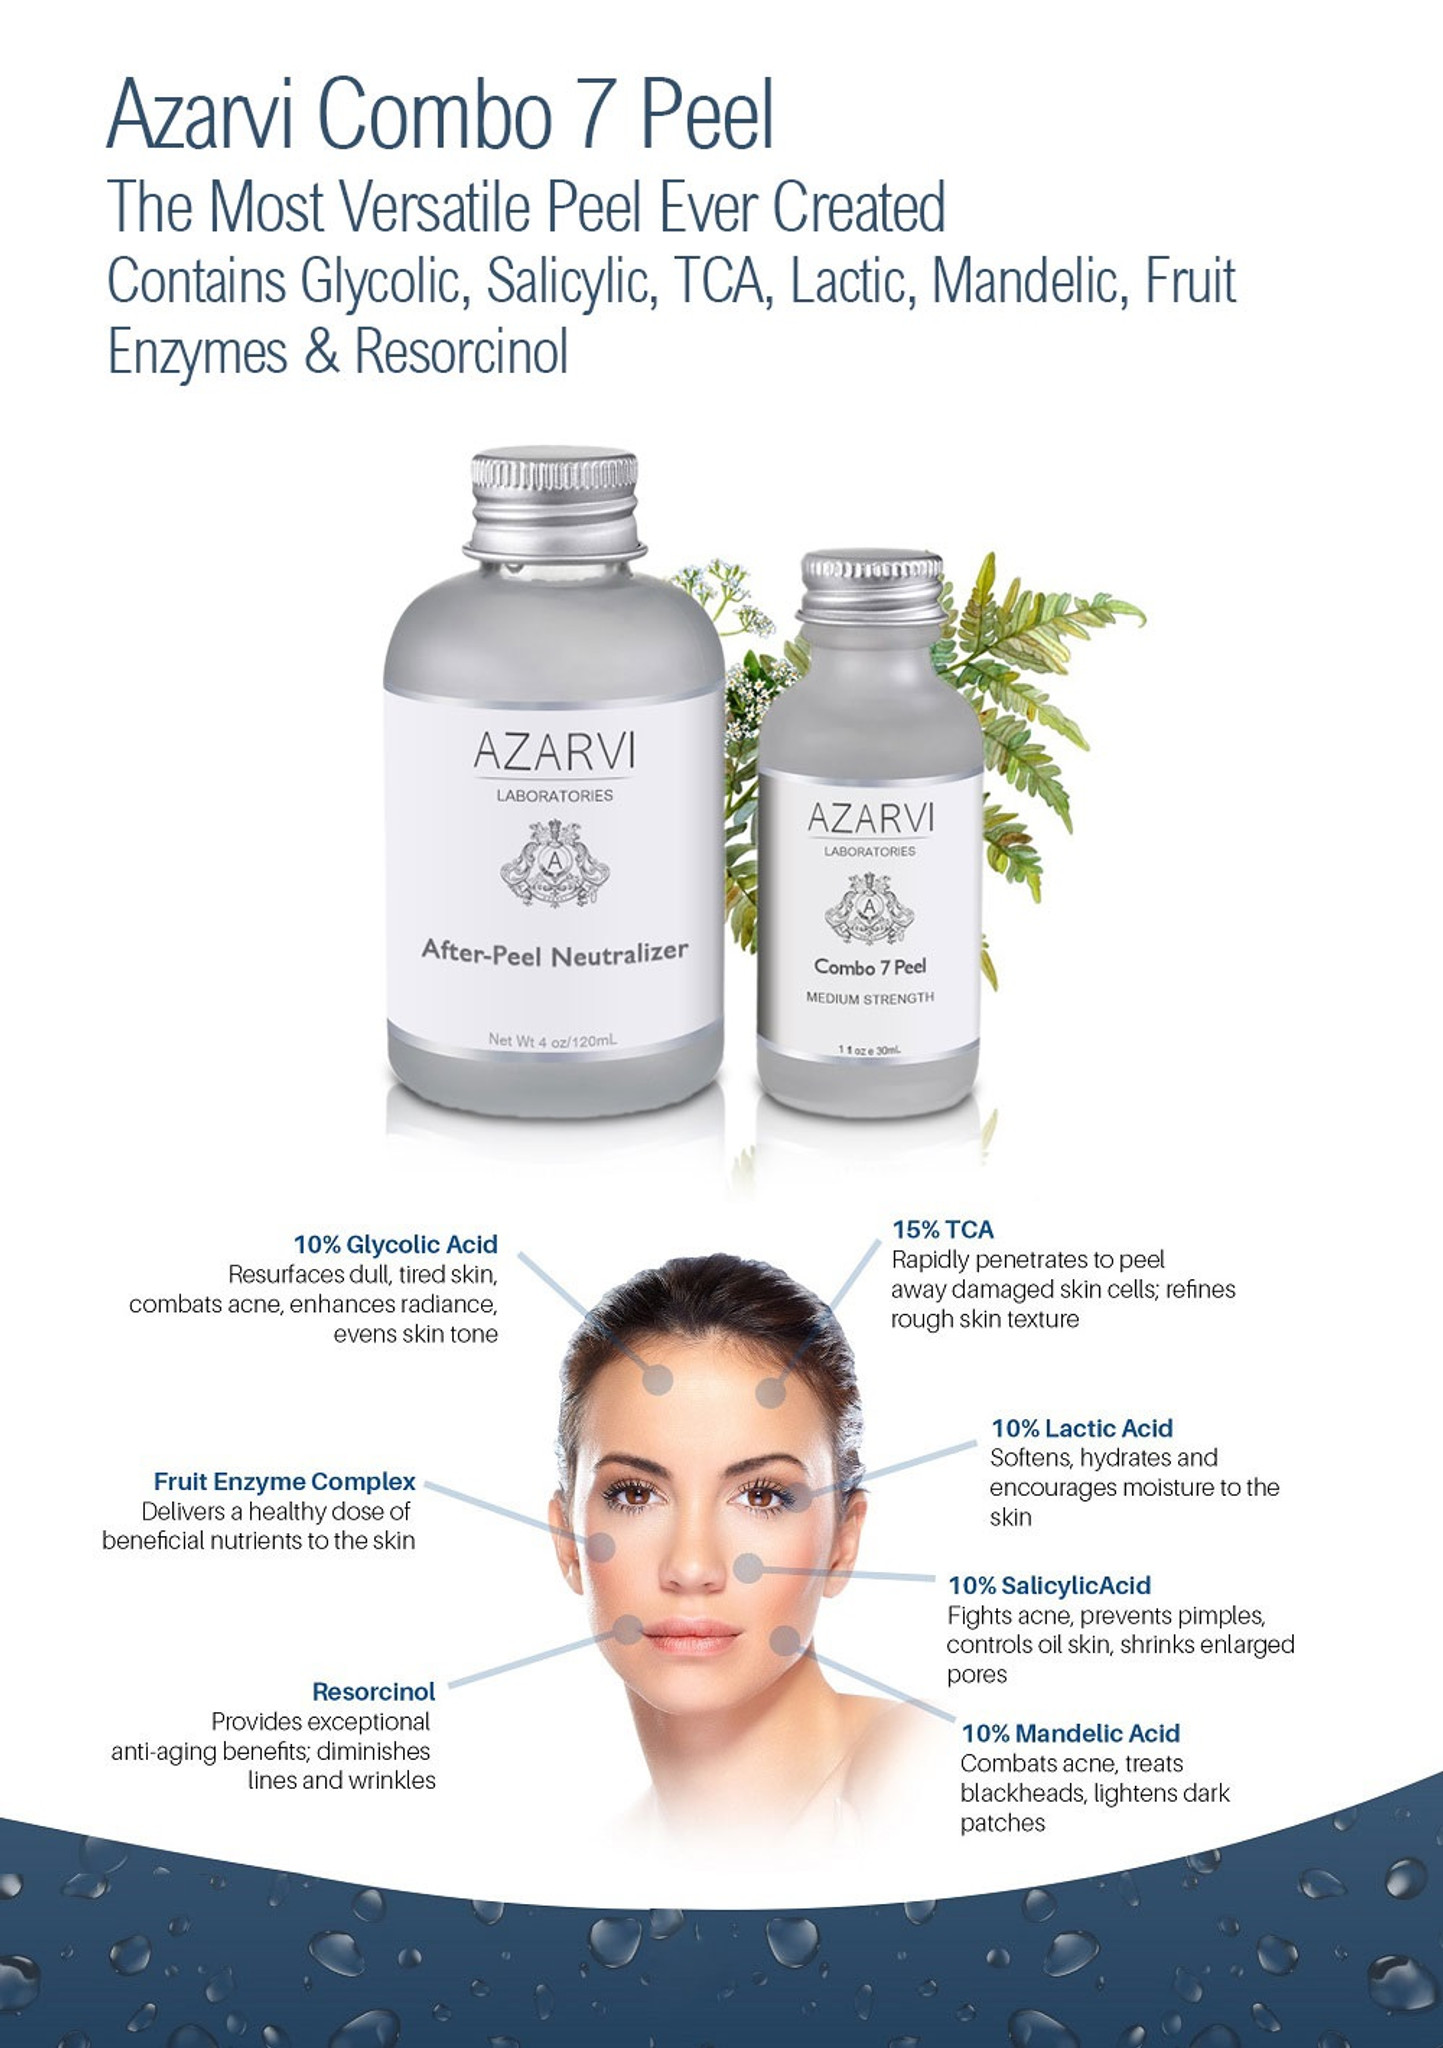 Azarvi Combo 7 Chemical Peel with Neutralizer